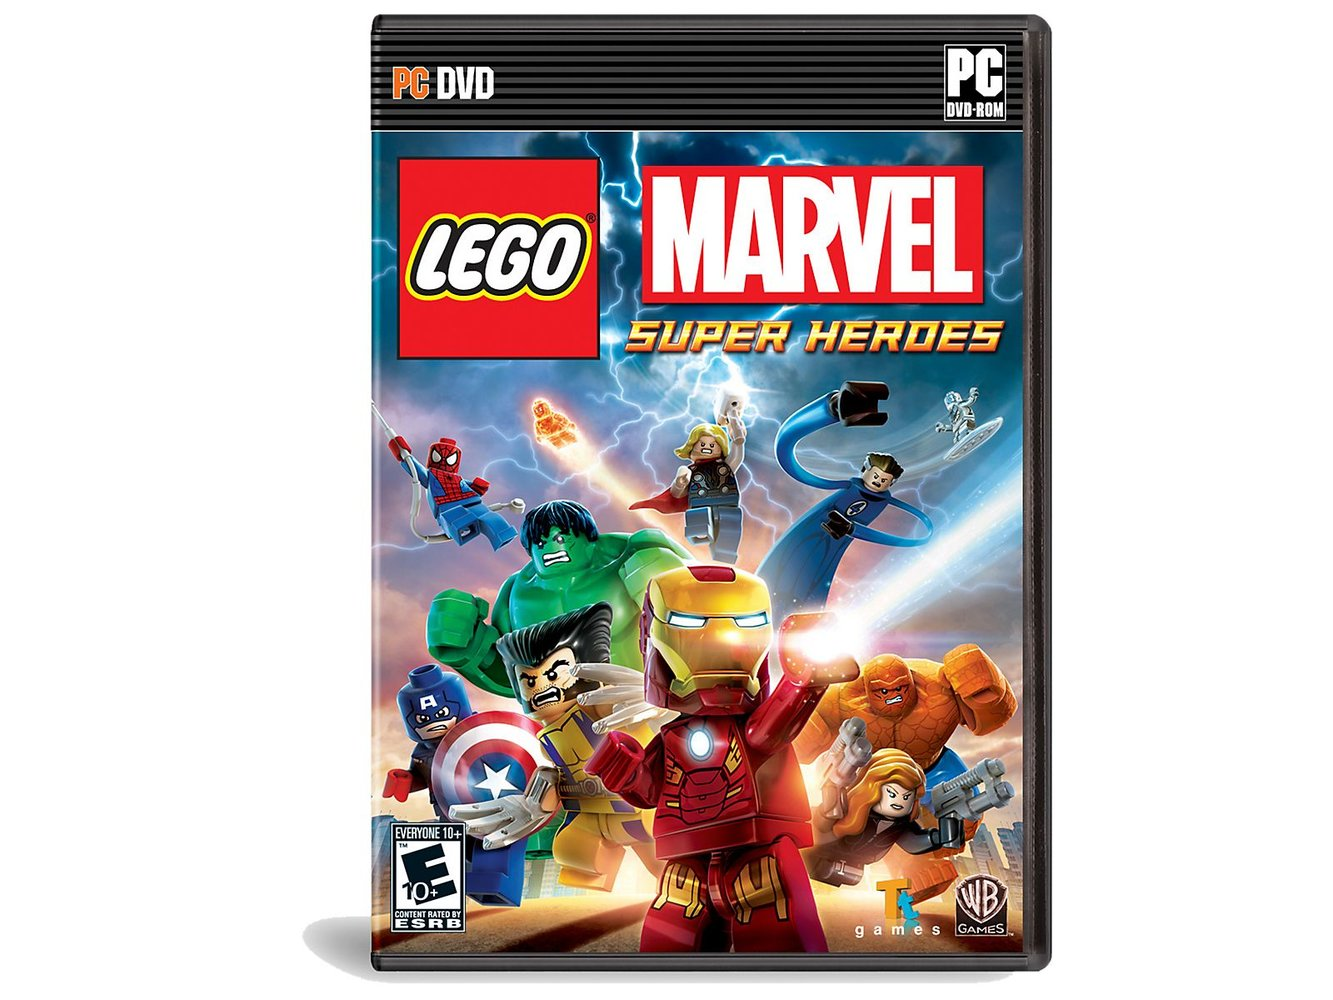 Marvel Super Heroes Video Game - PC